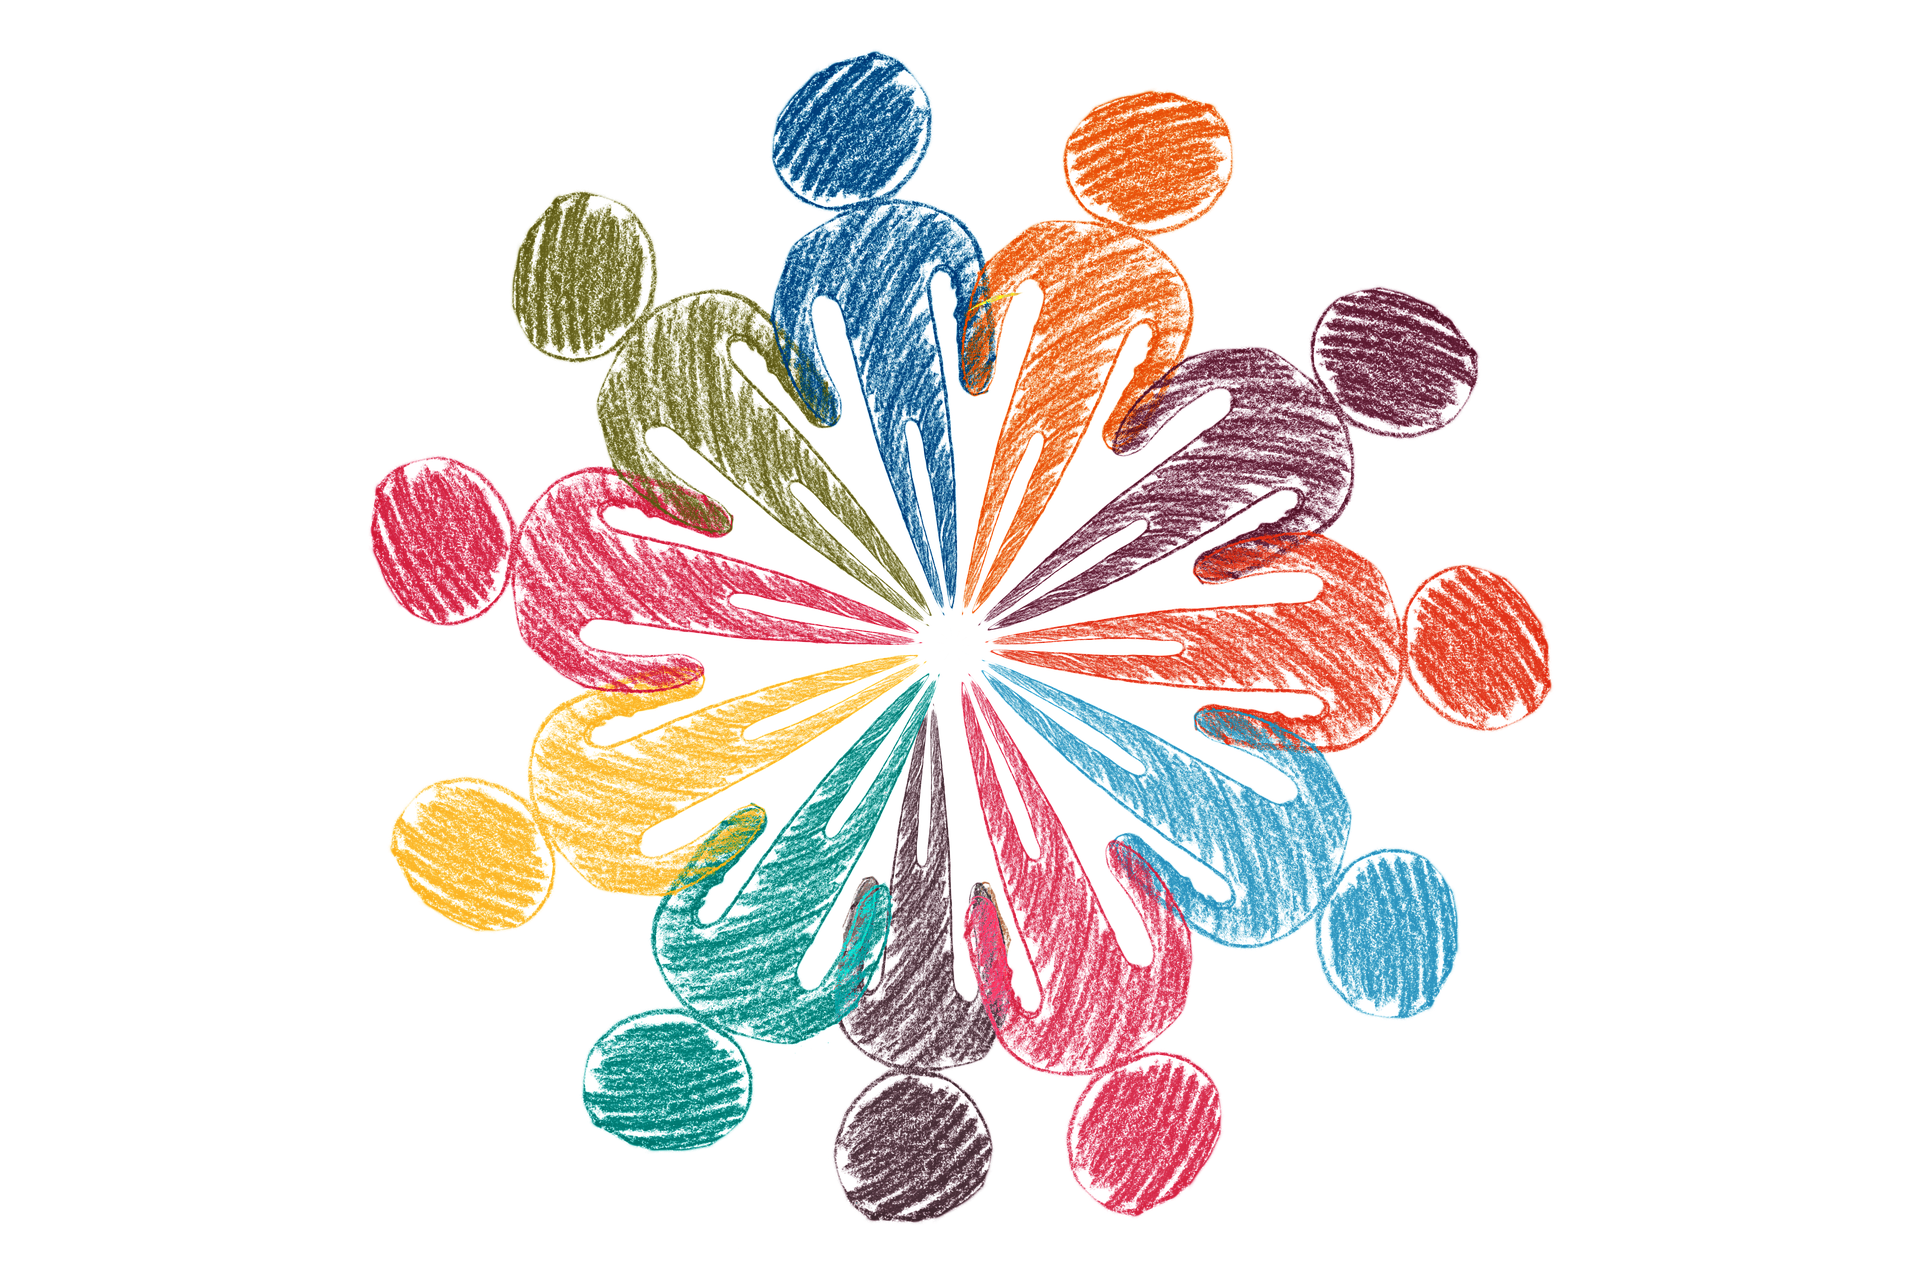 multicolored drawing of people figures arranged in circle